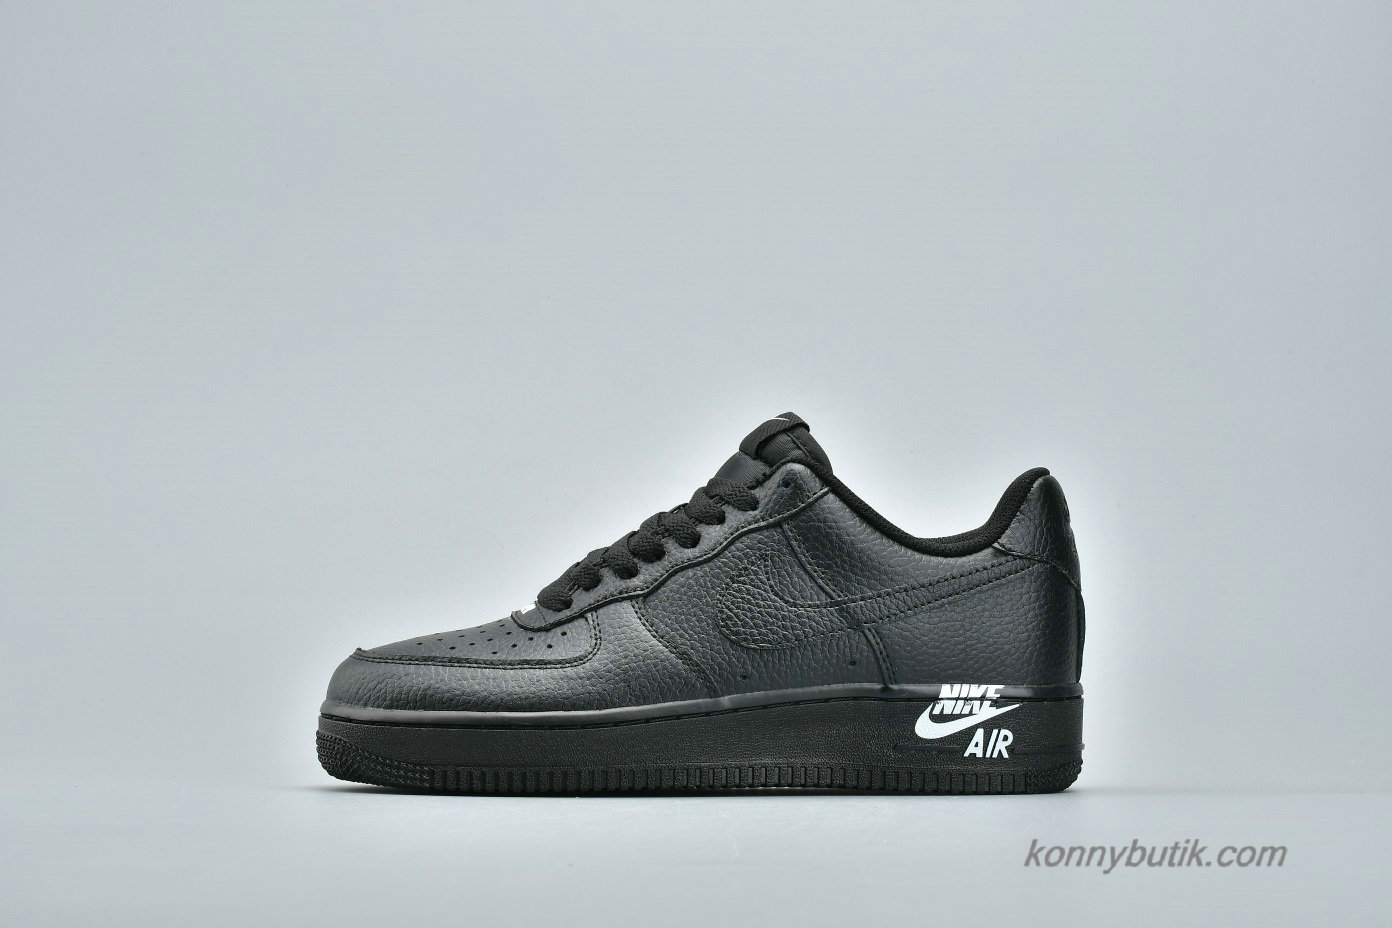 Nike Air Force 1 Low 07 Sport Herre Sko Sort (AJ7280-002)